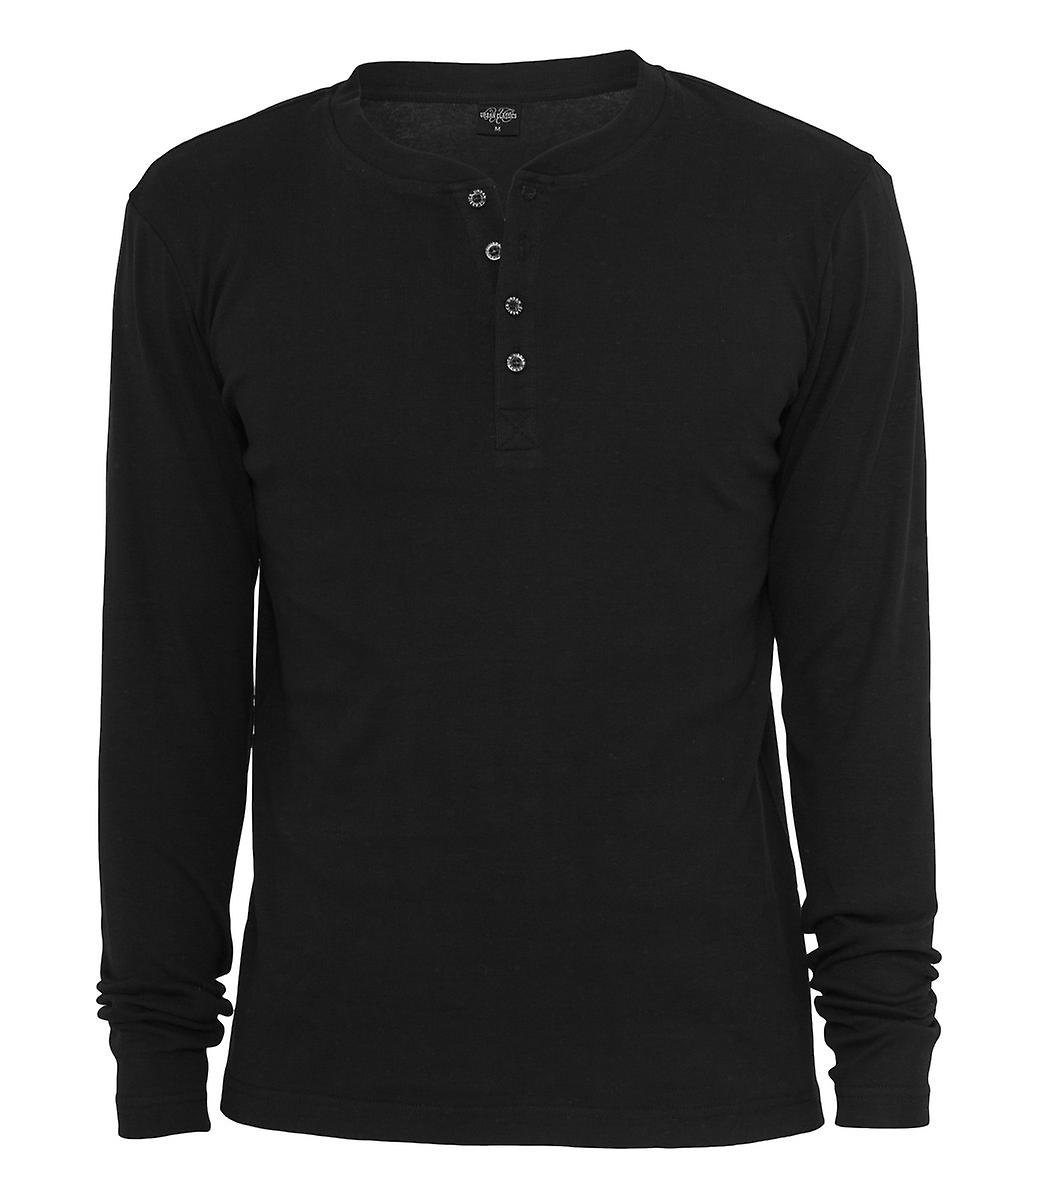 Urban classics slim 1by1 Henley L / S tee